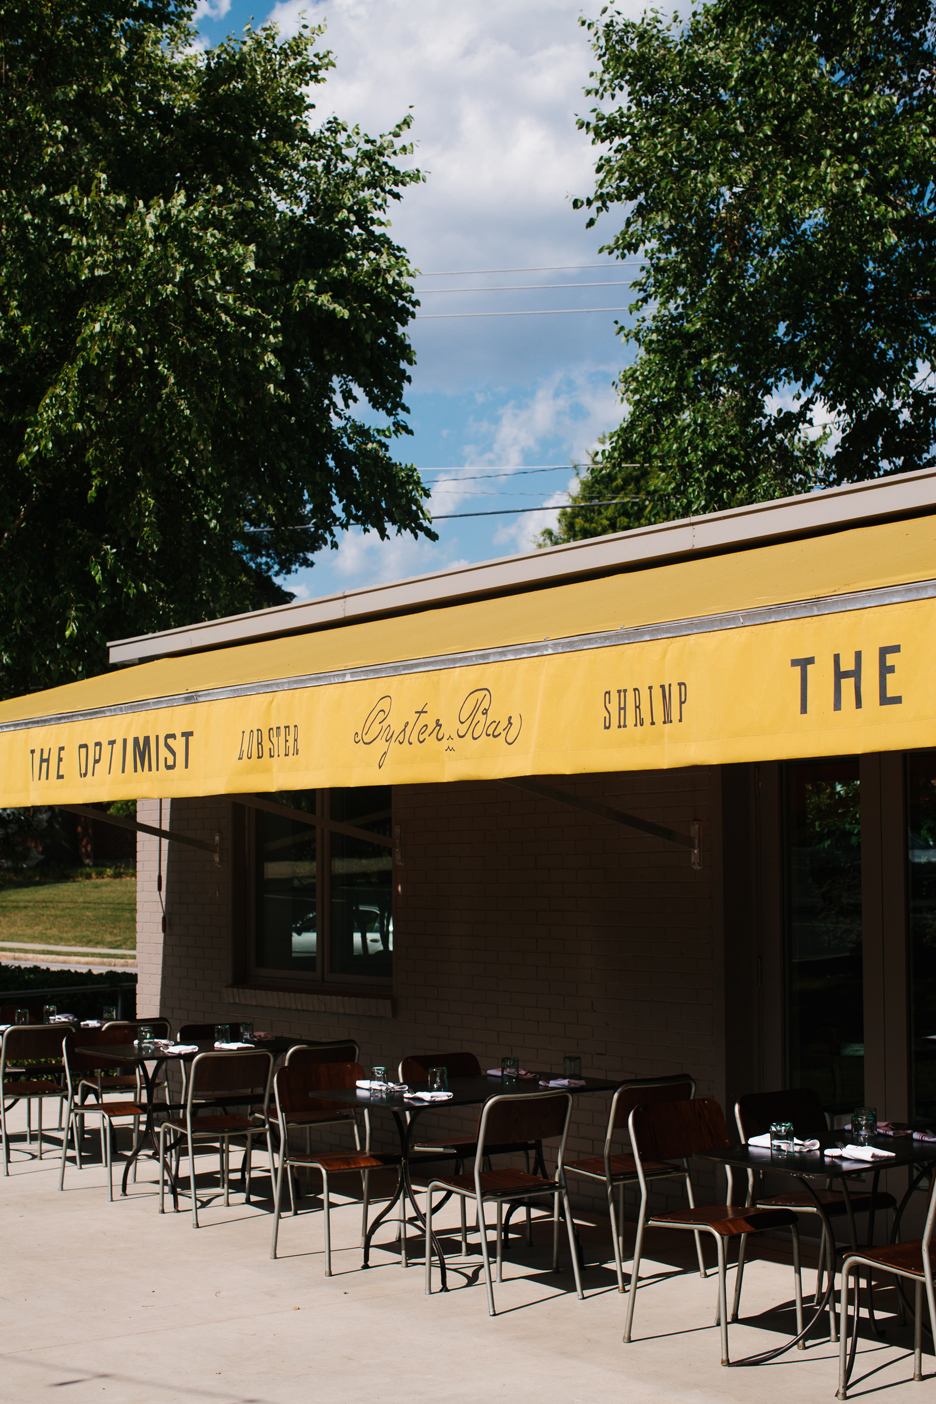 The Oyster bar at The Optimist | Smith Hanes. outside seating